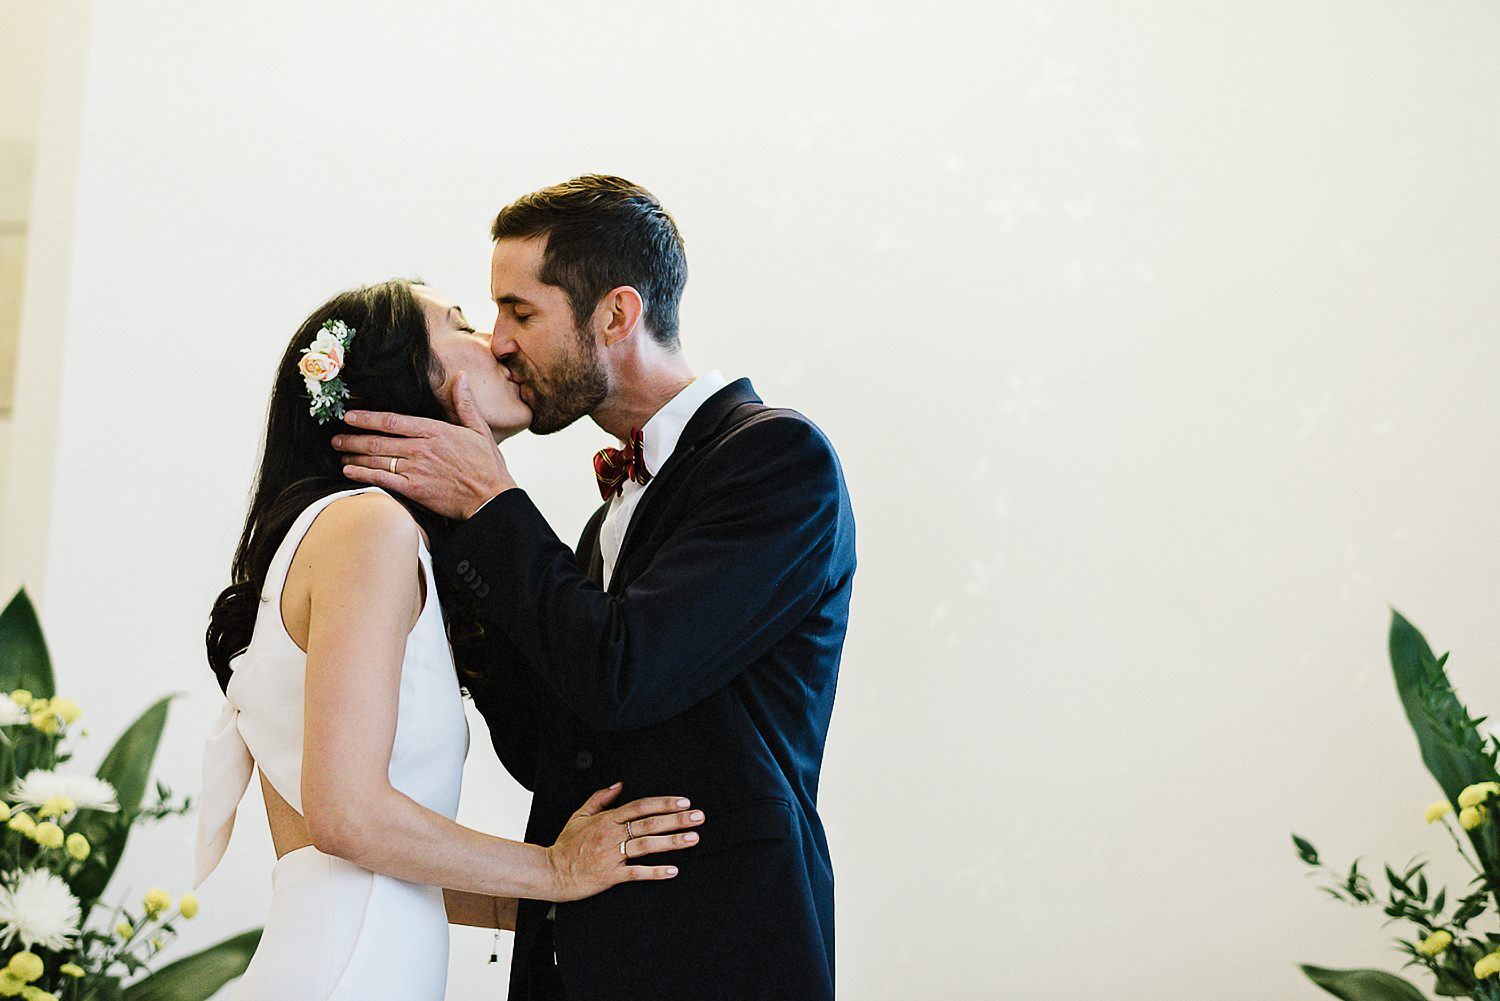 47-535-Best-City-Hall-Elopement-Photography-Toronto-Ontario-Canada-Urban-Summer-Wedding-Vintage-Bride-and-Groom-Candid-Genuine-Moments-Documentary-Photojournalistic-Style-First-Kiss.jpg